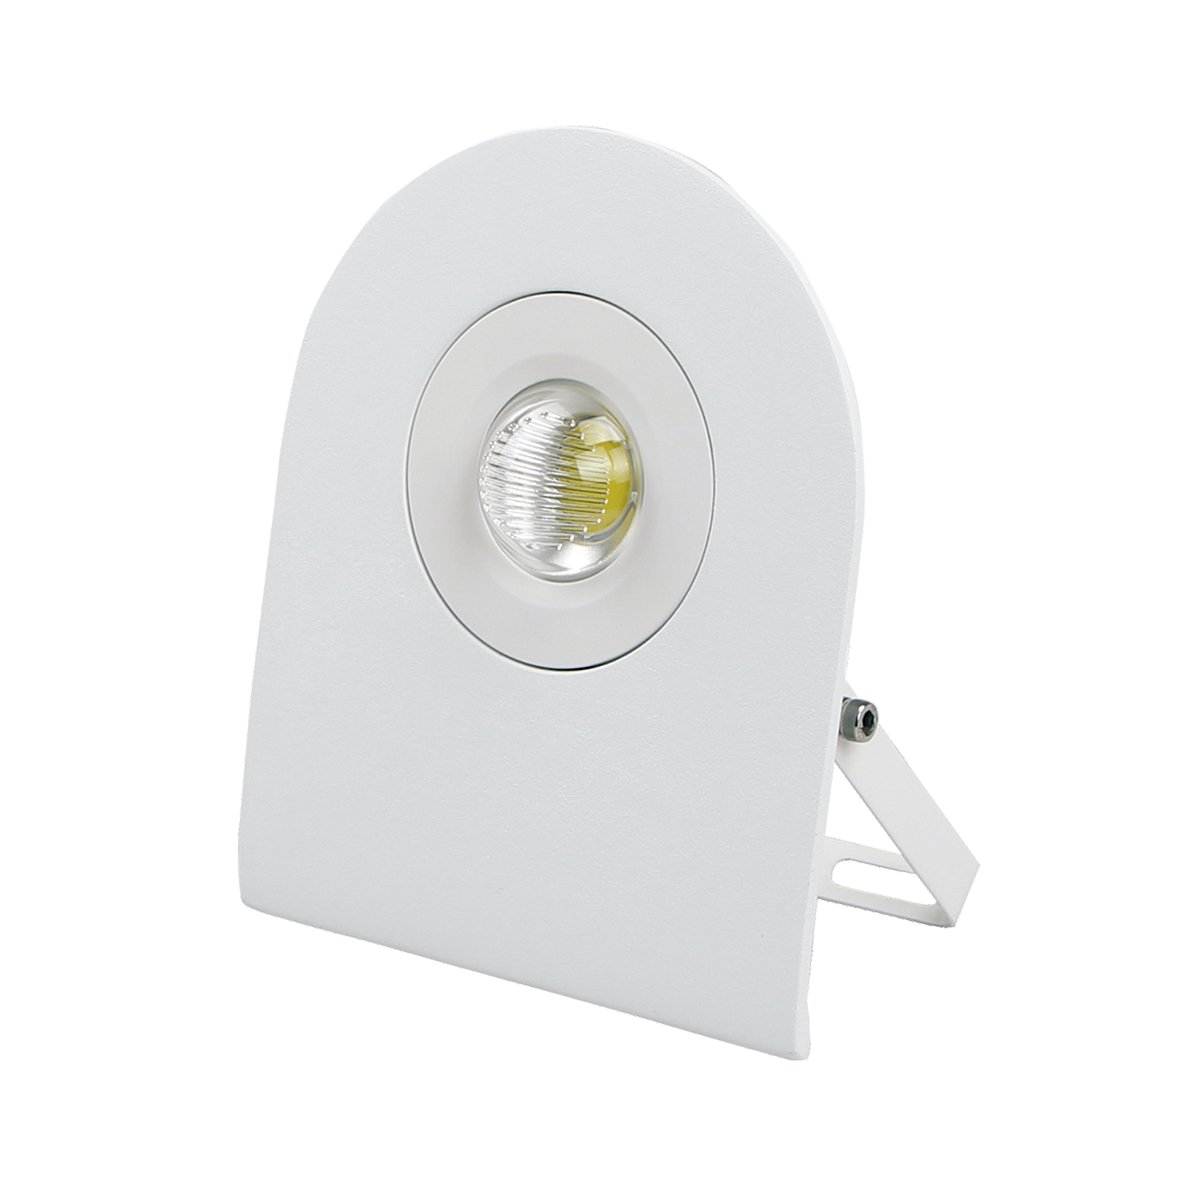 Blanco 50 W LightED Concep Proyector LED 40K 190 x 251 x 52 mm